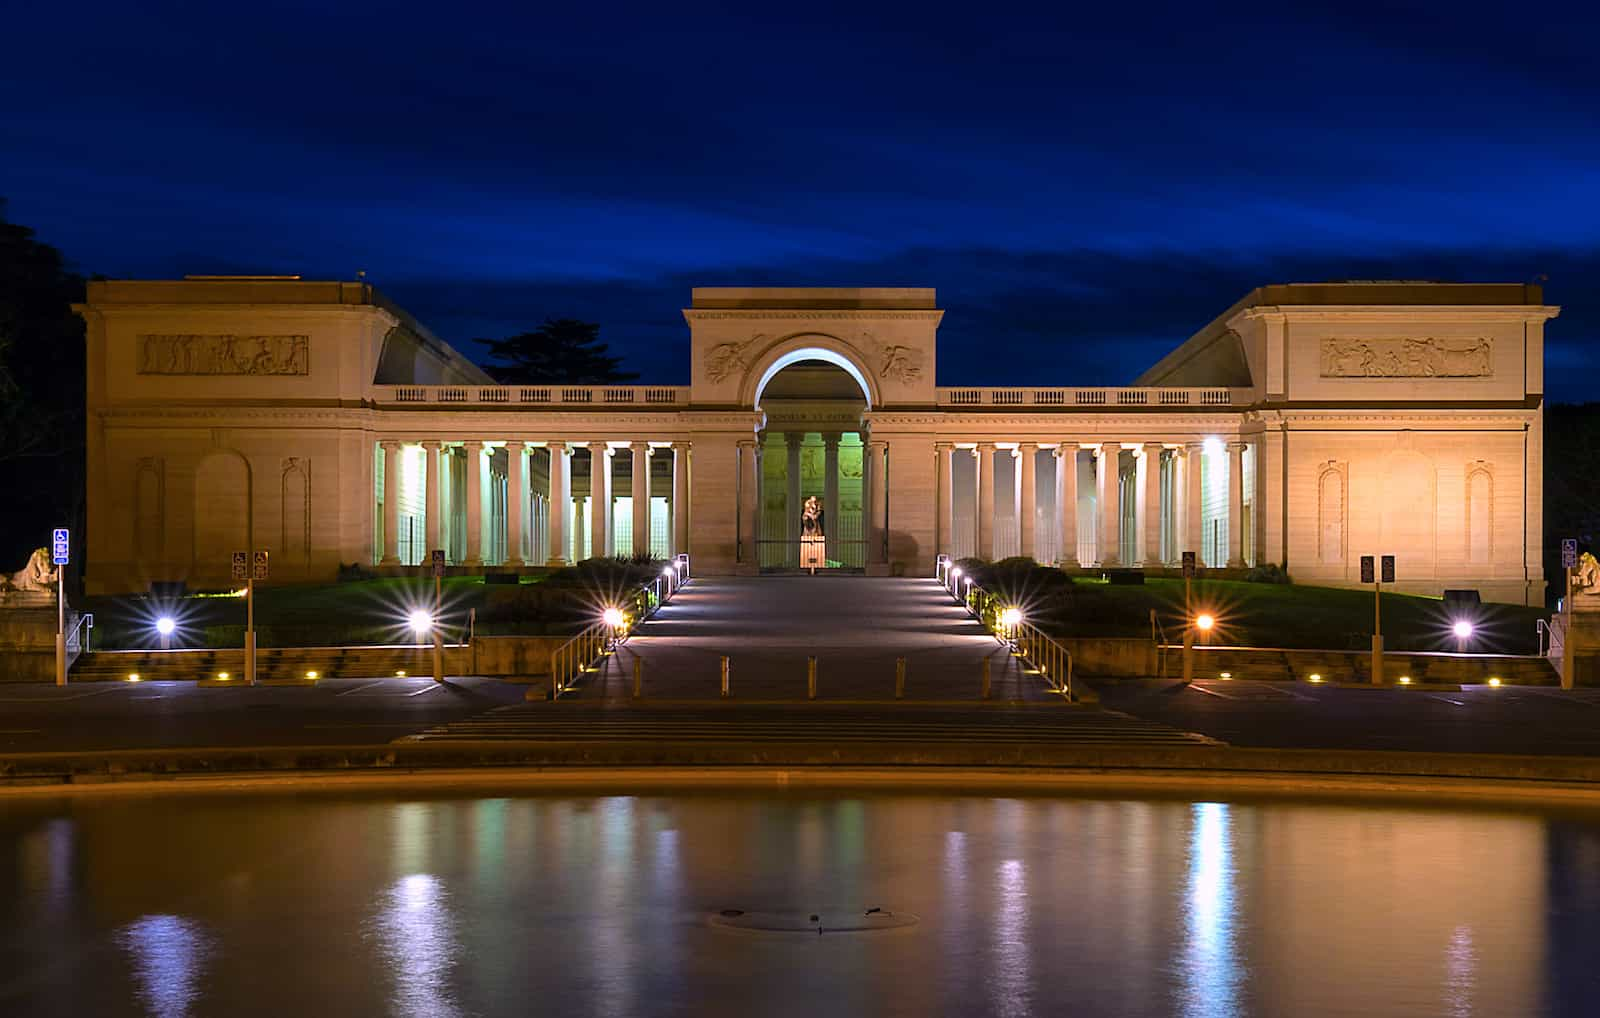 Legion of Honor Museum exterior overview at night